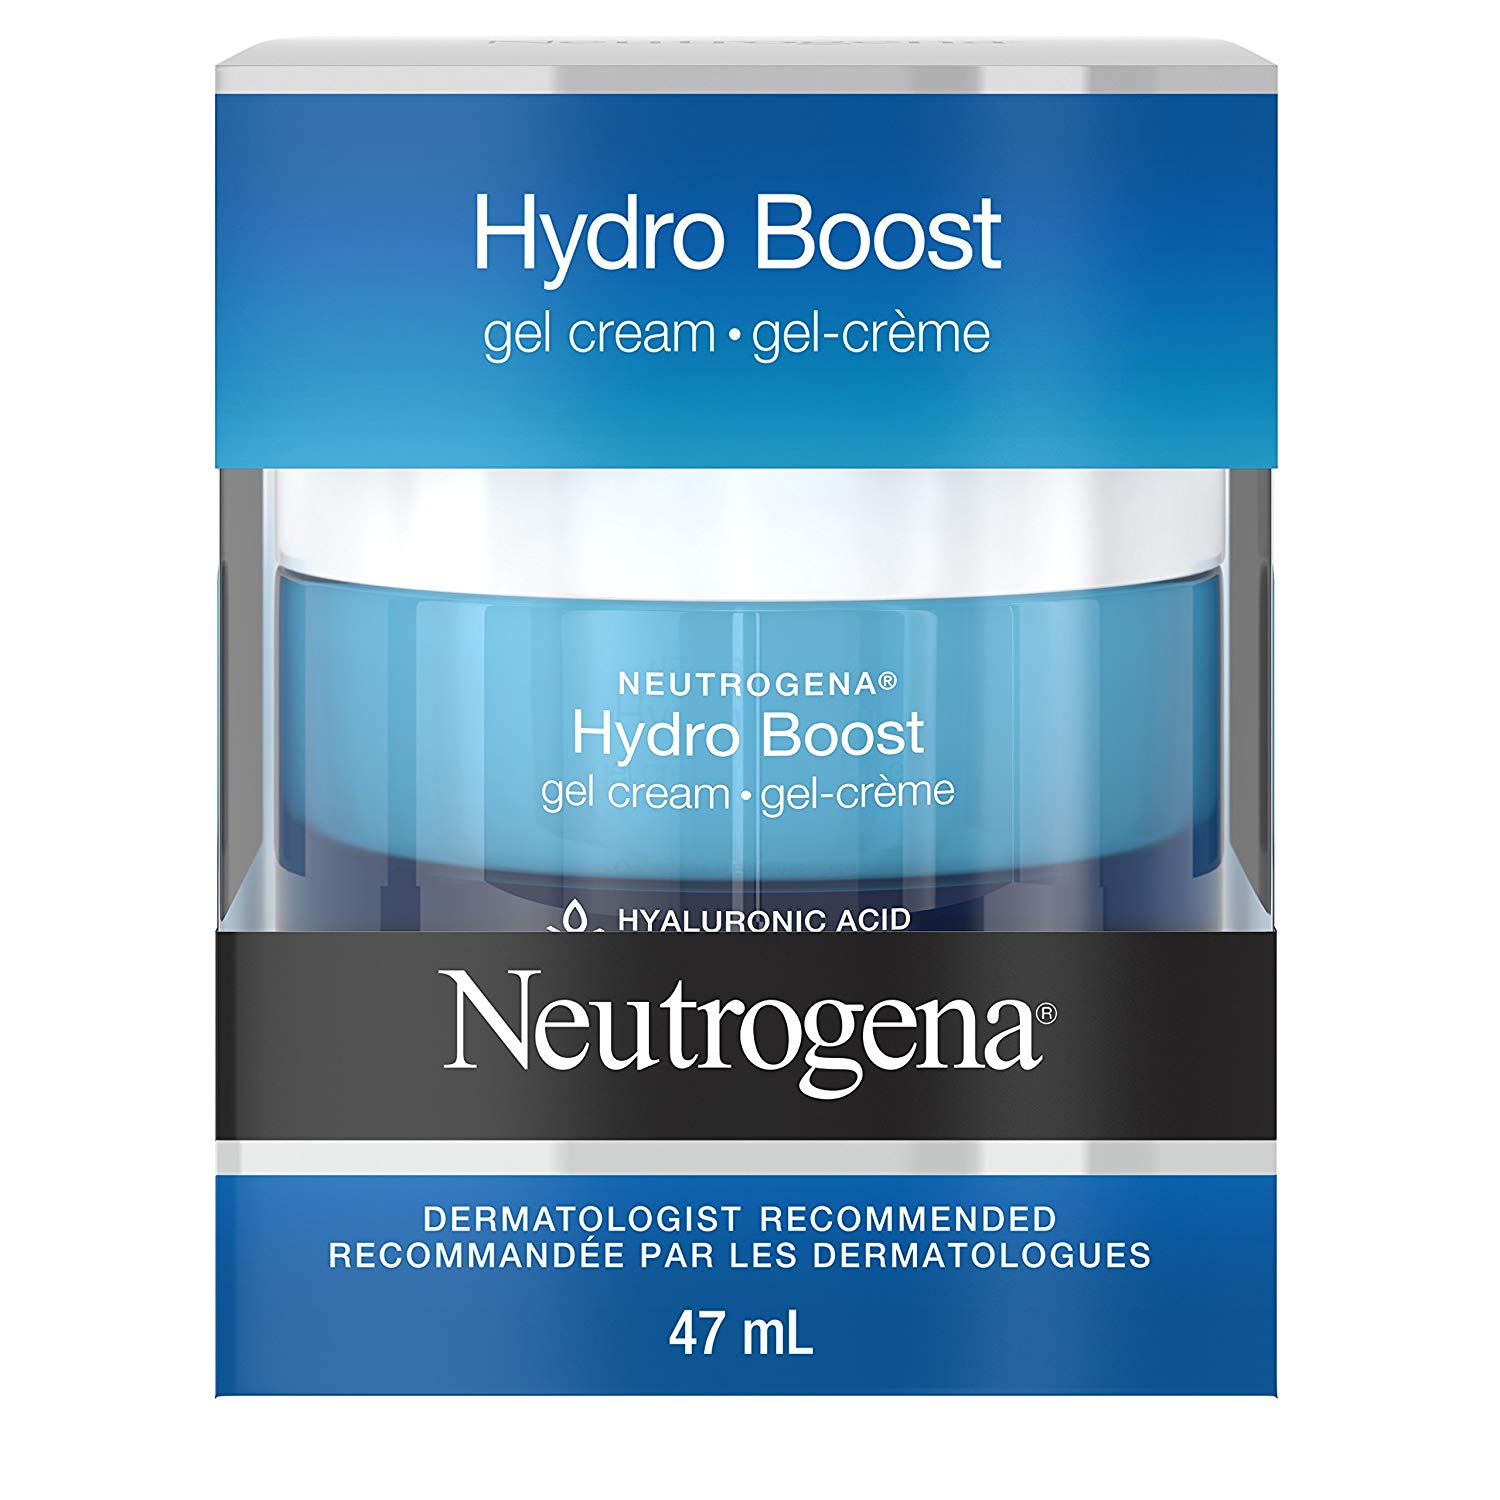 neutrogena gel cream.jpg